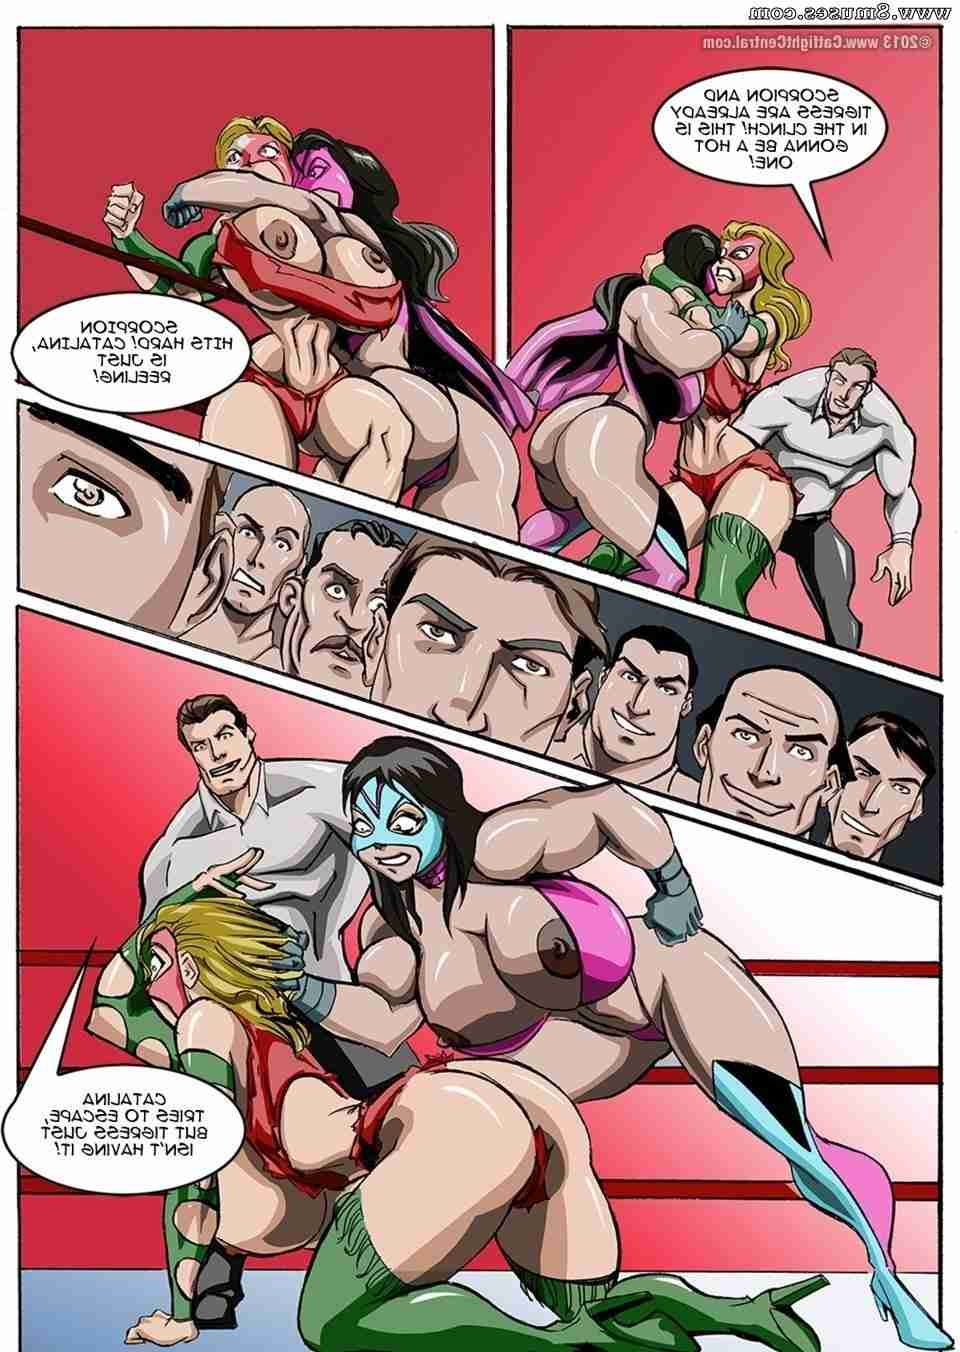 Central-Comics/Catfight-Central/Lucha-Libre-XXX Lucha_Libre_XXX__8muses_-_Sex_and_Porn_Comics_2.jpg